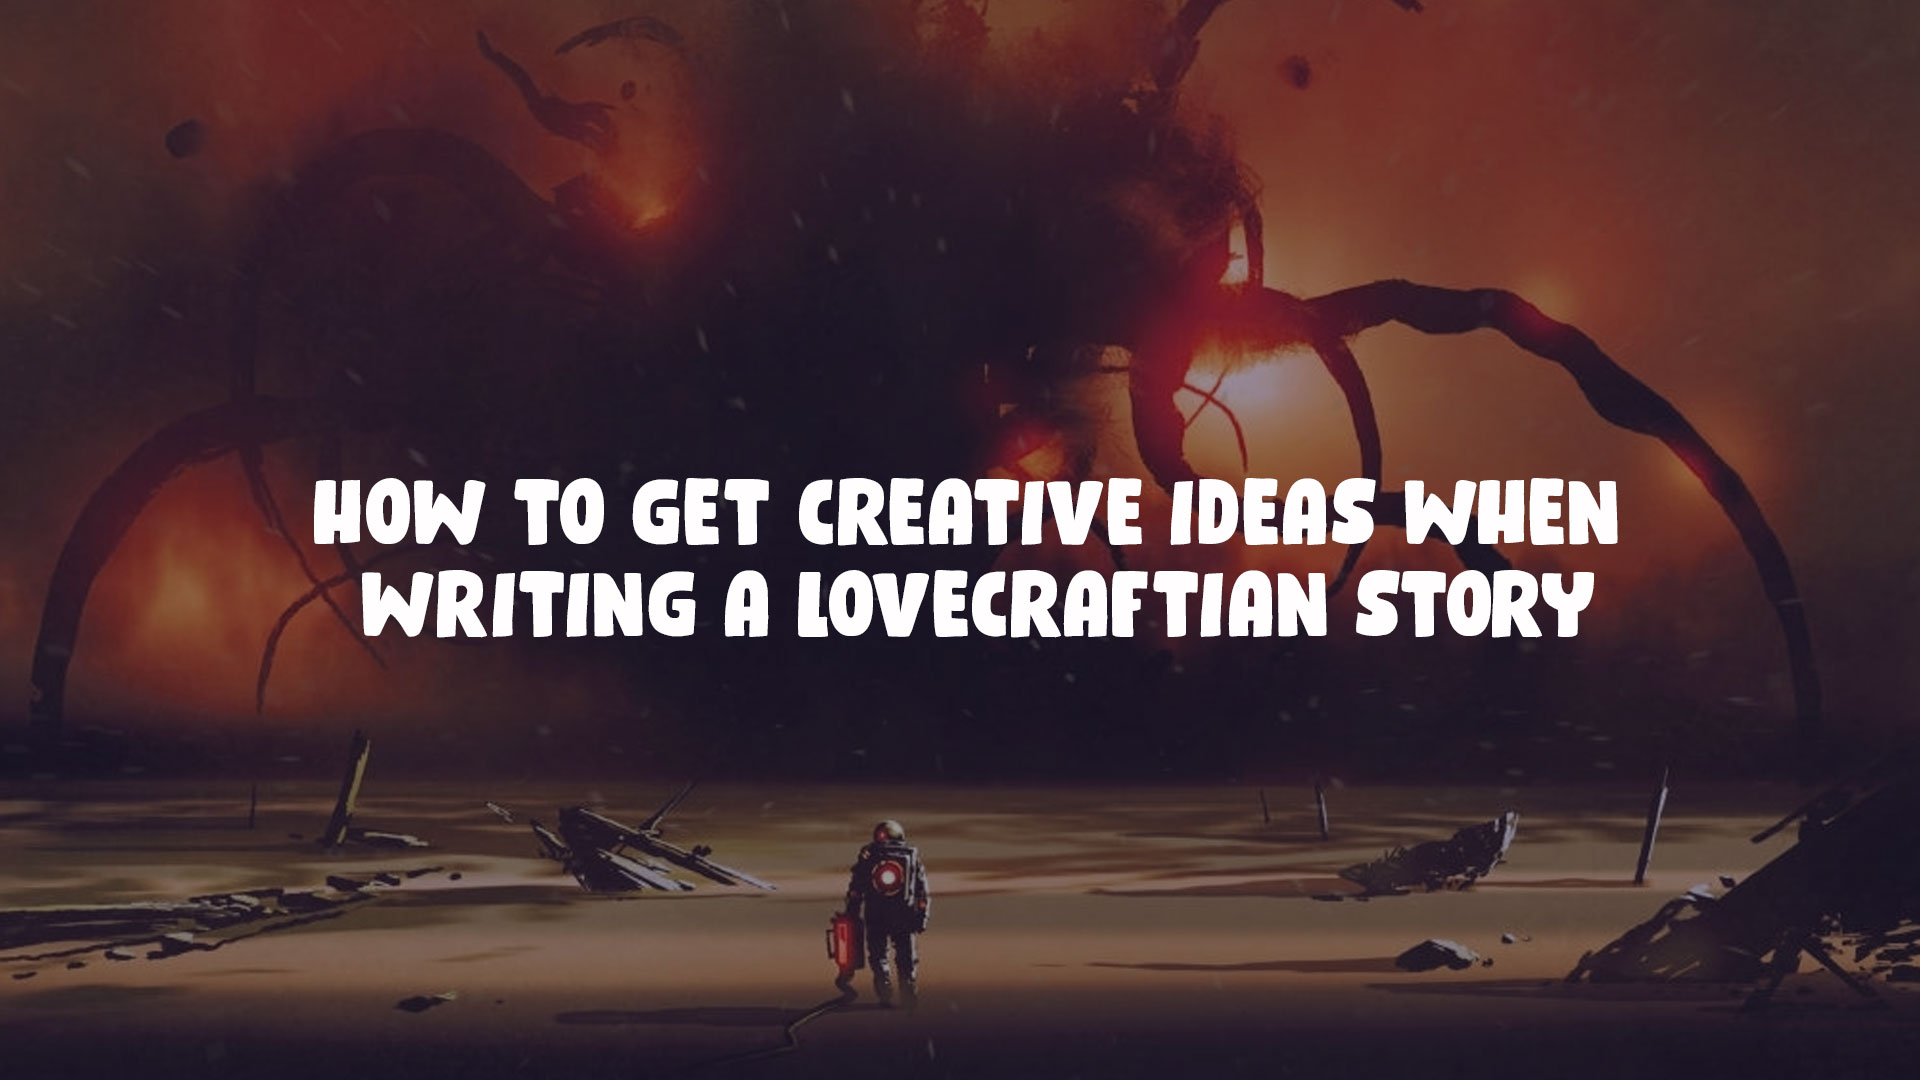 How to Get Creative Ideas When Writing a Lovecraftian Story - Joab Stieglitz